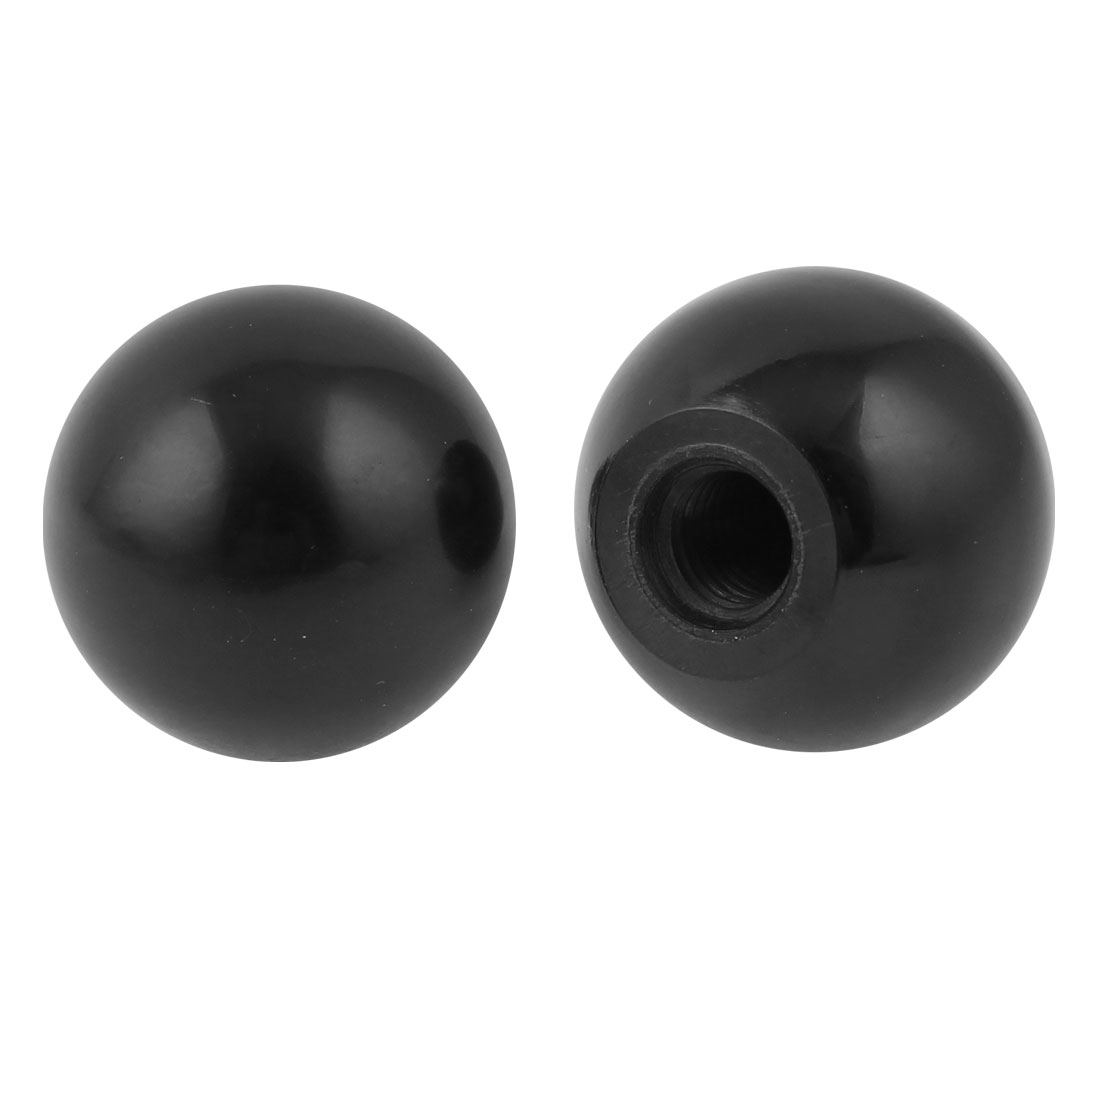 2PCS 37mm Height 40mm Dia M12x33mm Thread Black Plastic Handgrip Ball Knob